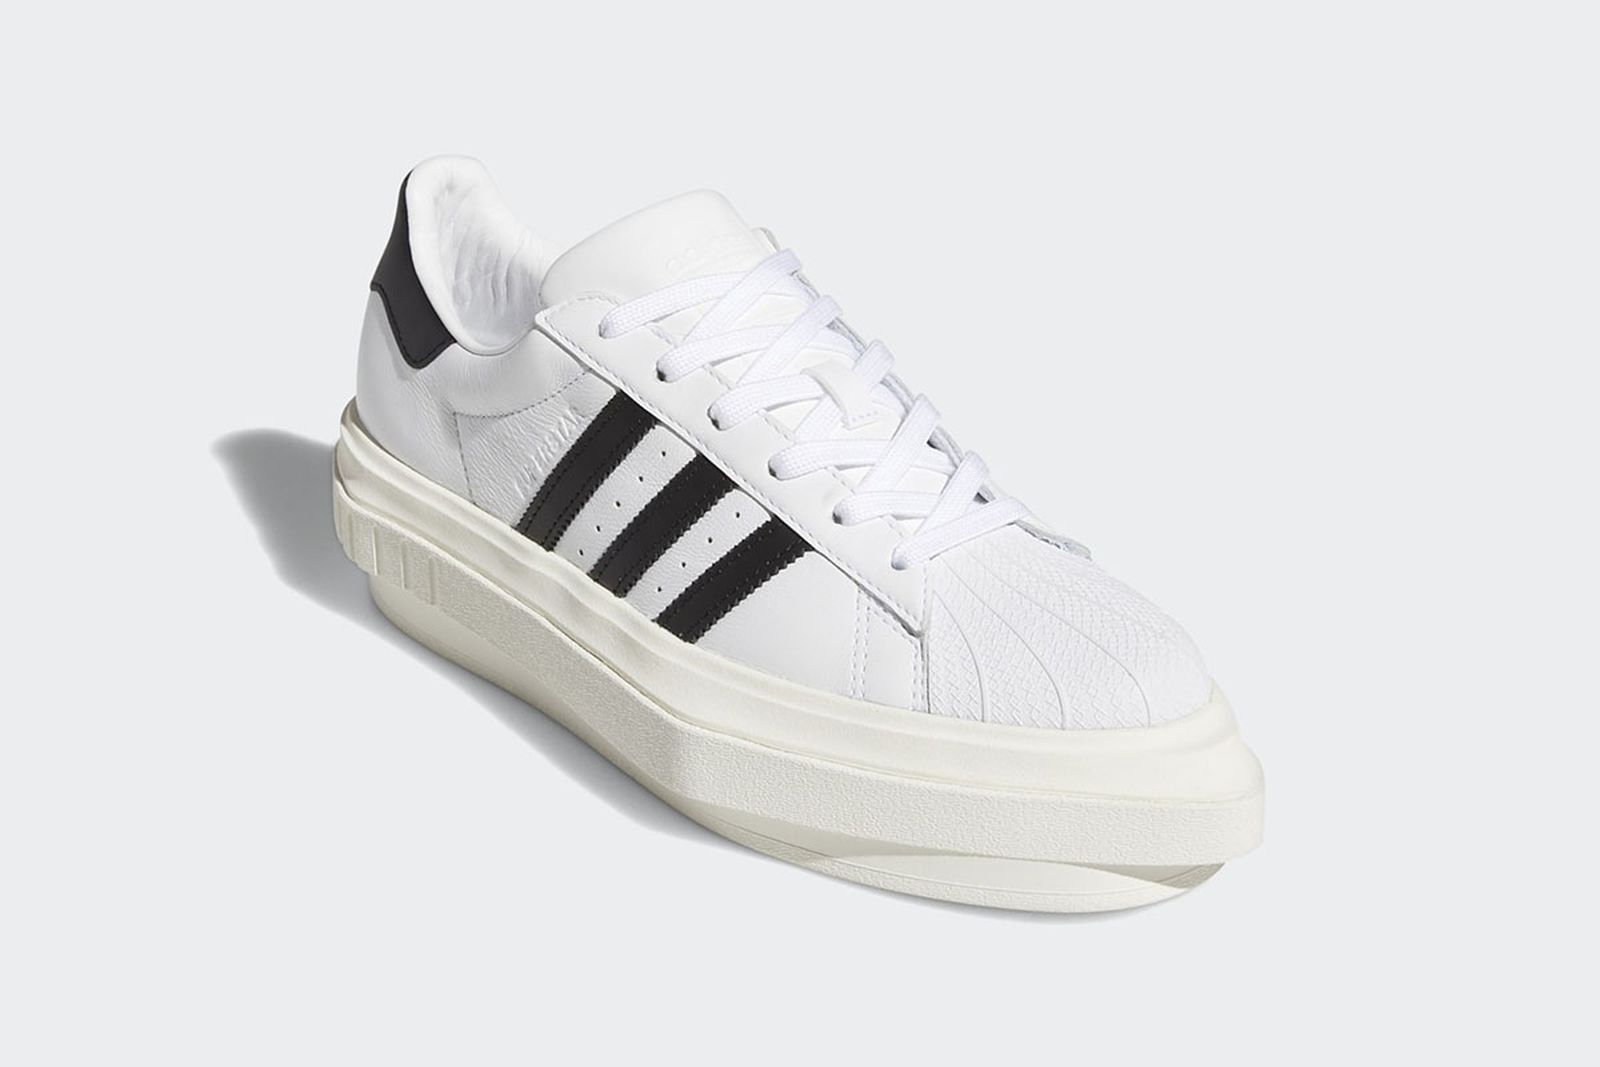 ven gato Belicoso  Beyoncé Isn't Perfect, Just Look at her New adidas Superstar